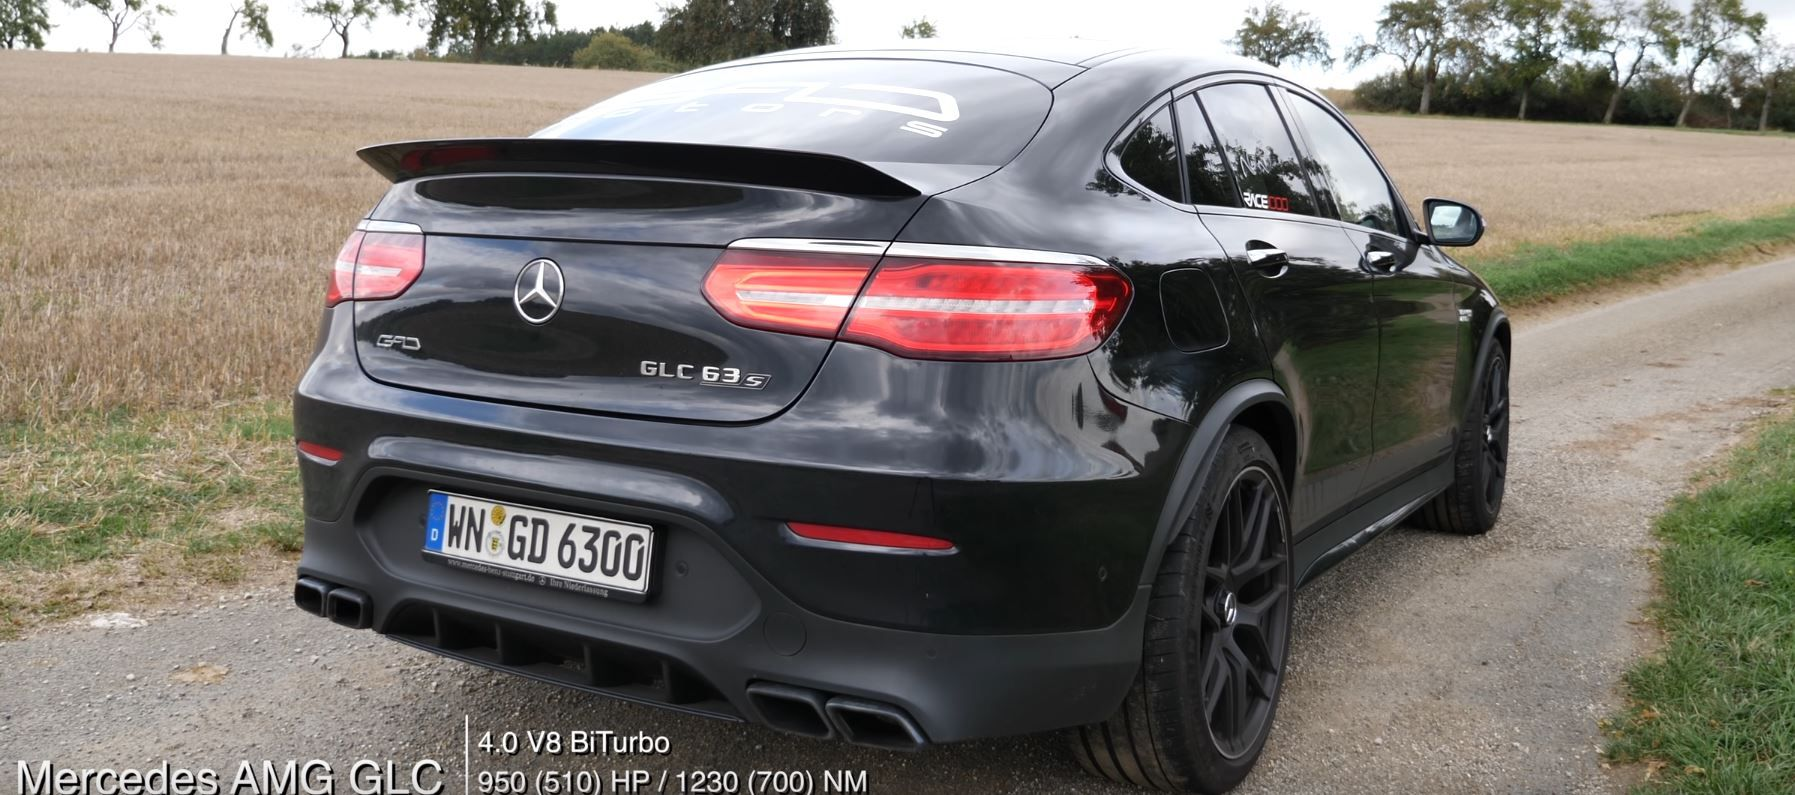 Mercedes Amg Glc 63 S Coupe By Gad Motors Fires 950 Hp 708 Kw